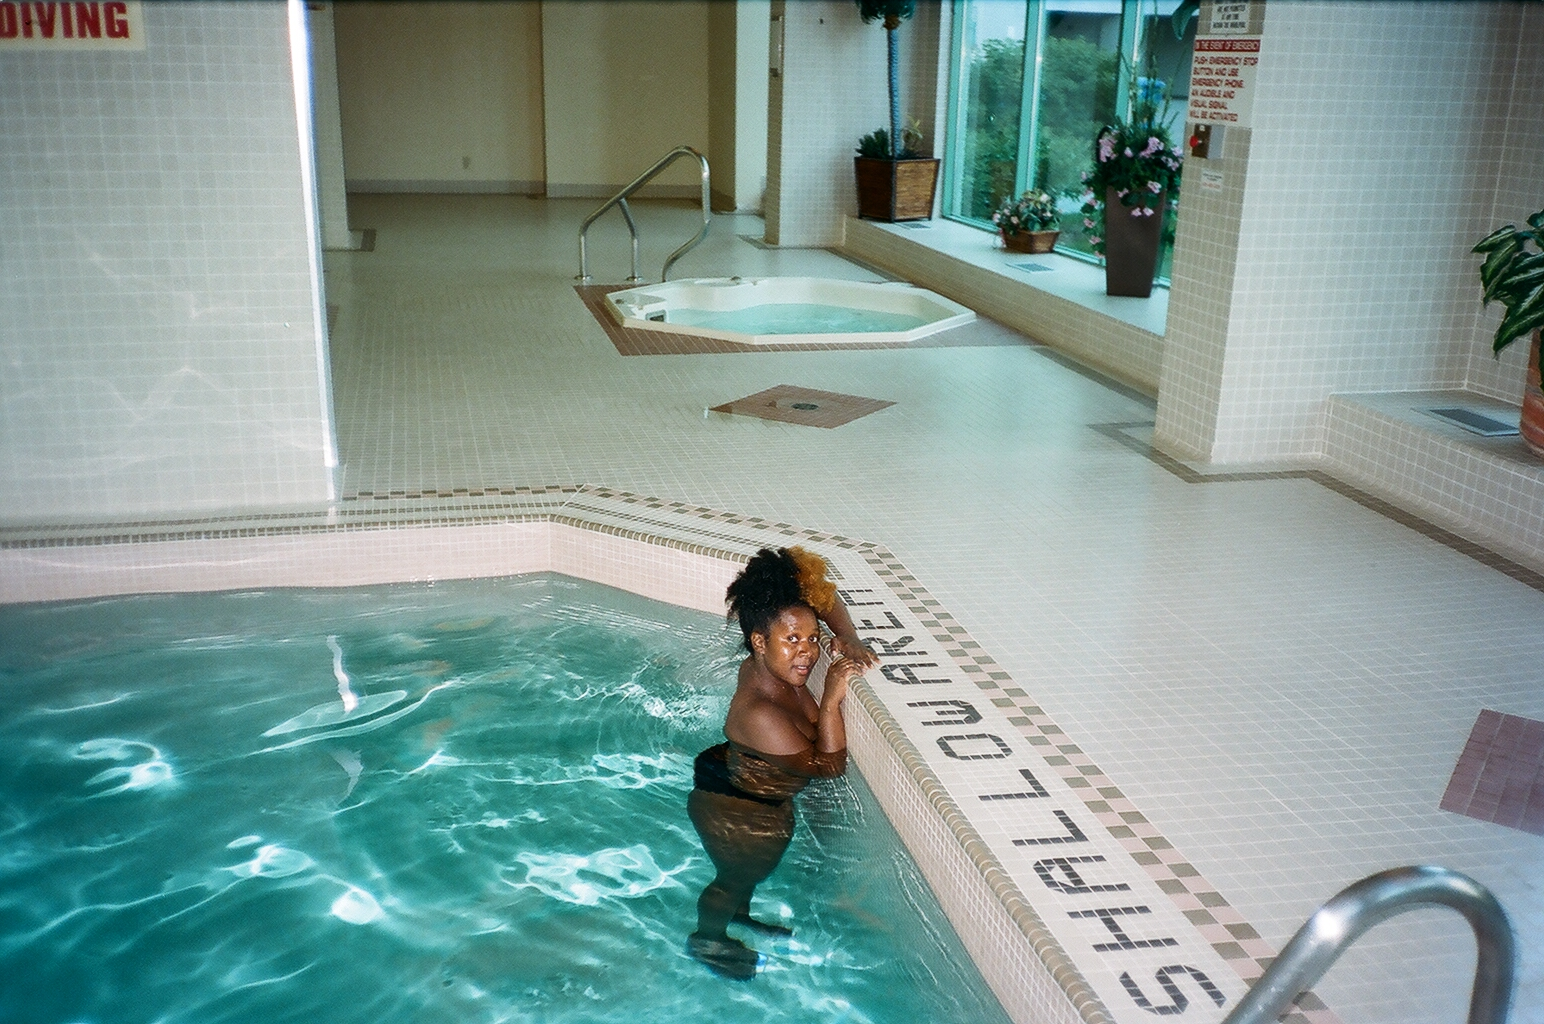 A colour snapshot of author in a swimming pool near the shallow end signage.